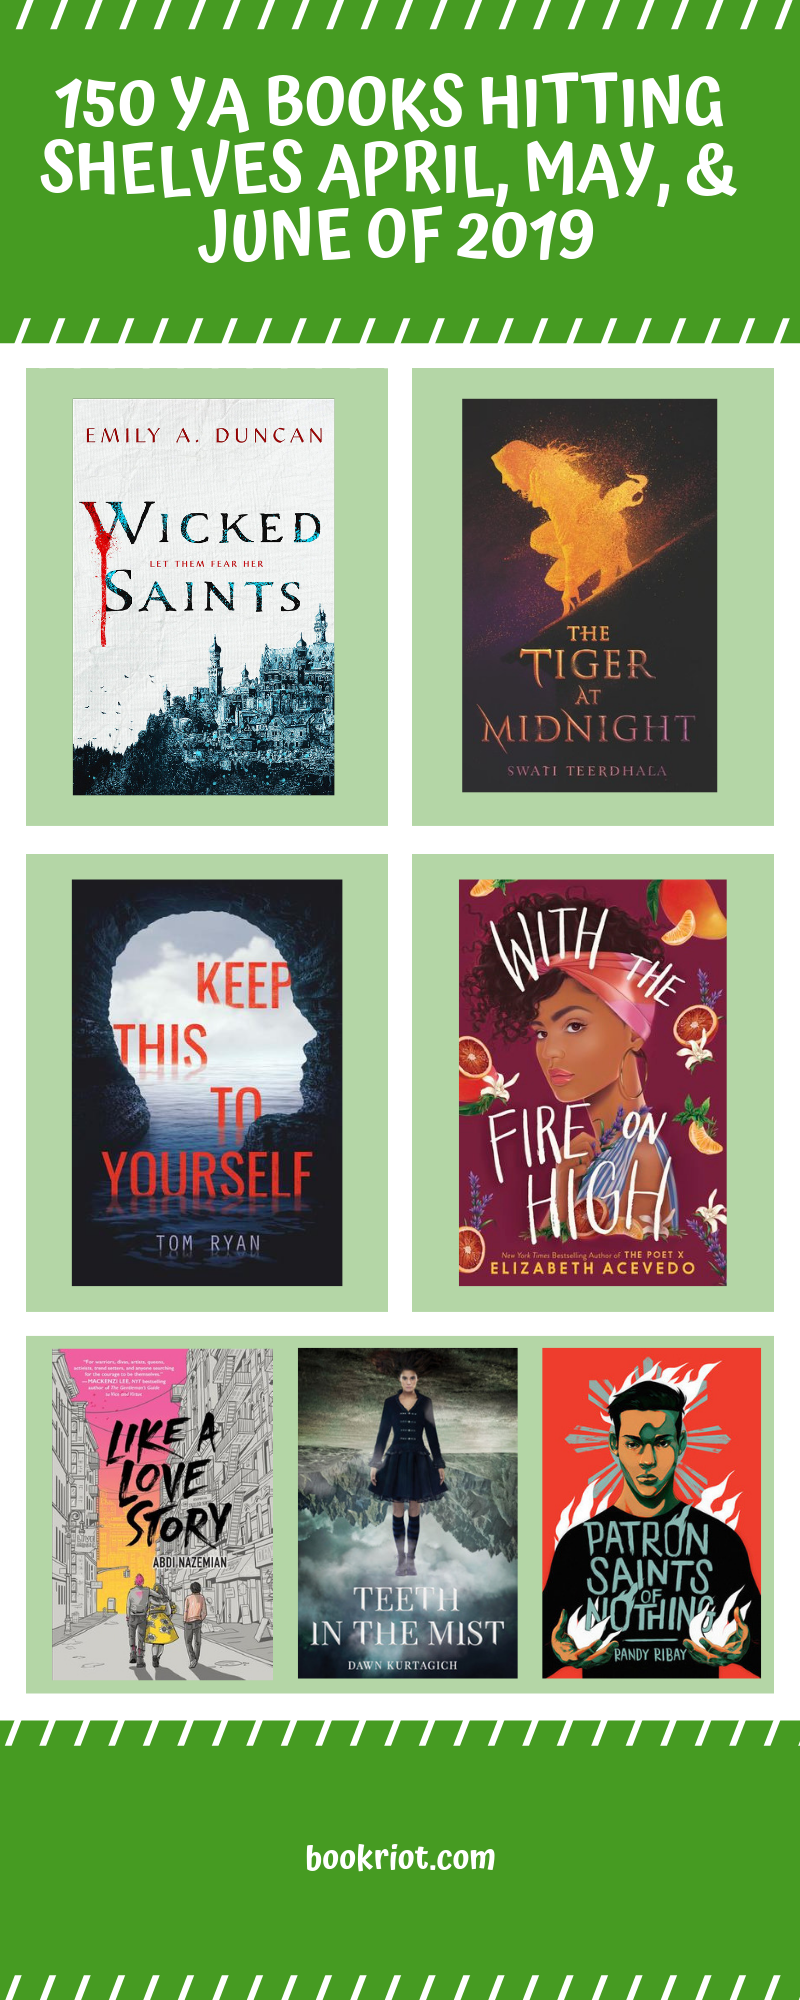 Spring 2019 YA book preview. Get to know the fiction and nonfiction hitting shelves between April and the end of June 2019. book lists | YA book lists | Upcoming YA books | young adult books | young adult fiction | young adult nonfiction | YA book preview | #YALit | great books to read | books to read spring 2019 | spring 2019 new books